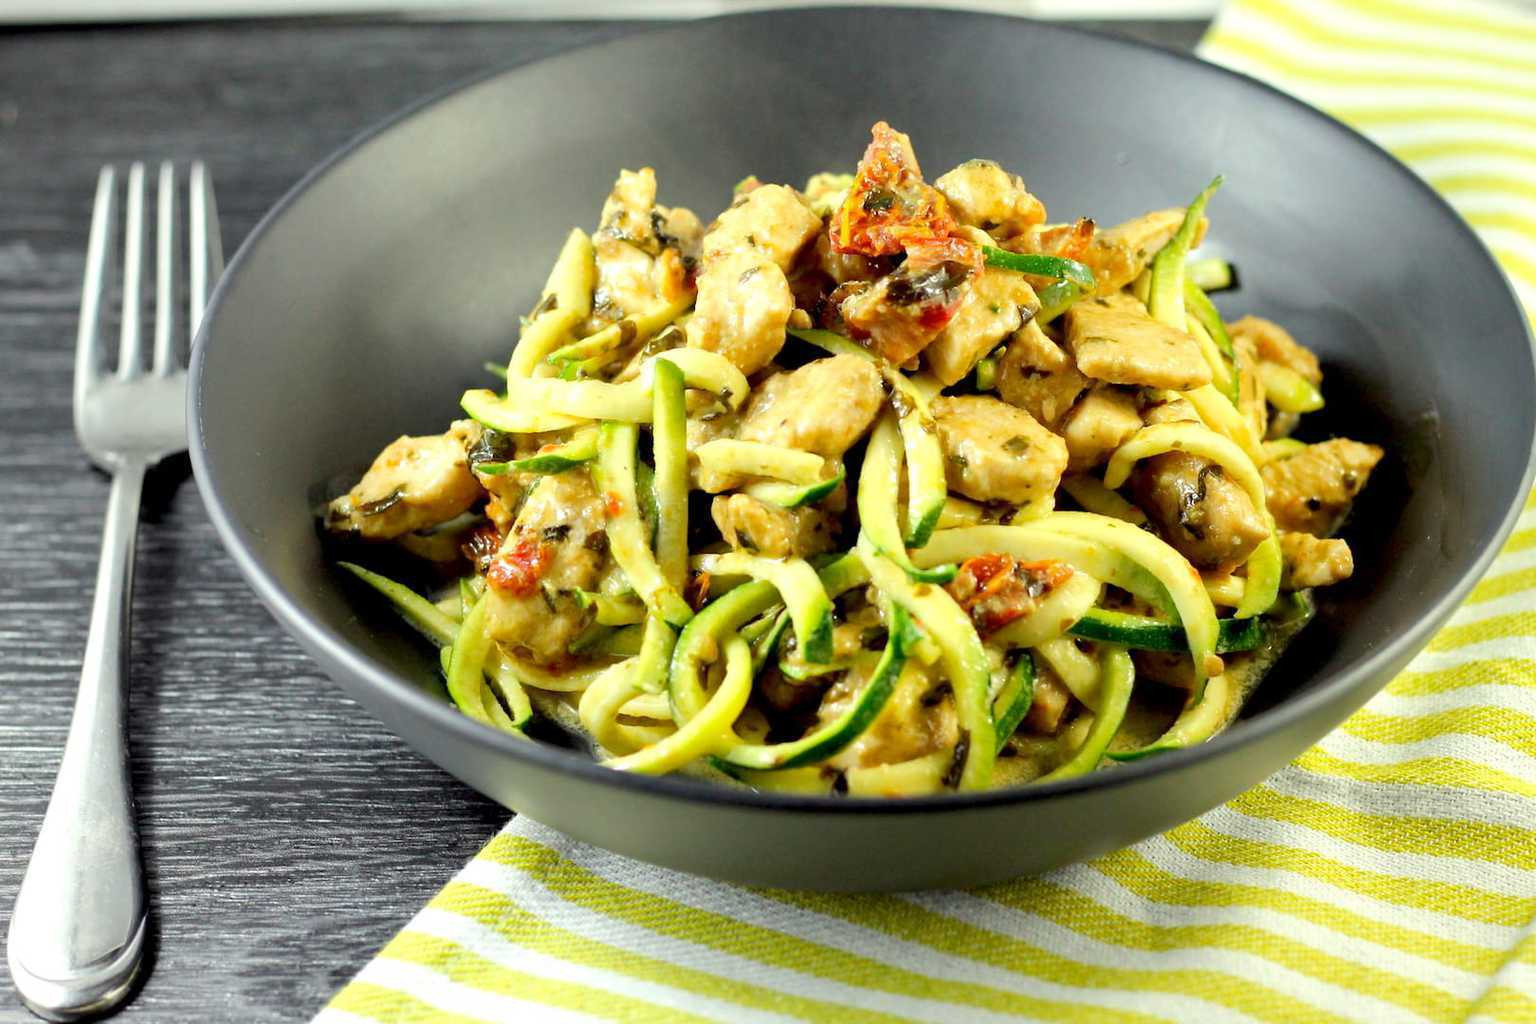 Noodles For Keto Diet  Keto Pesto Chicken with Zucchini Noodles